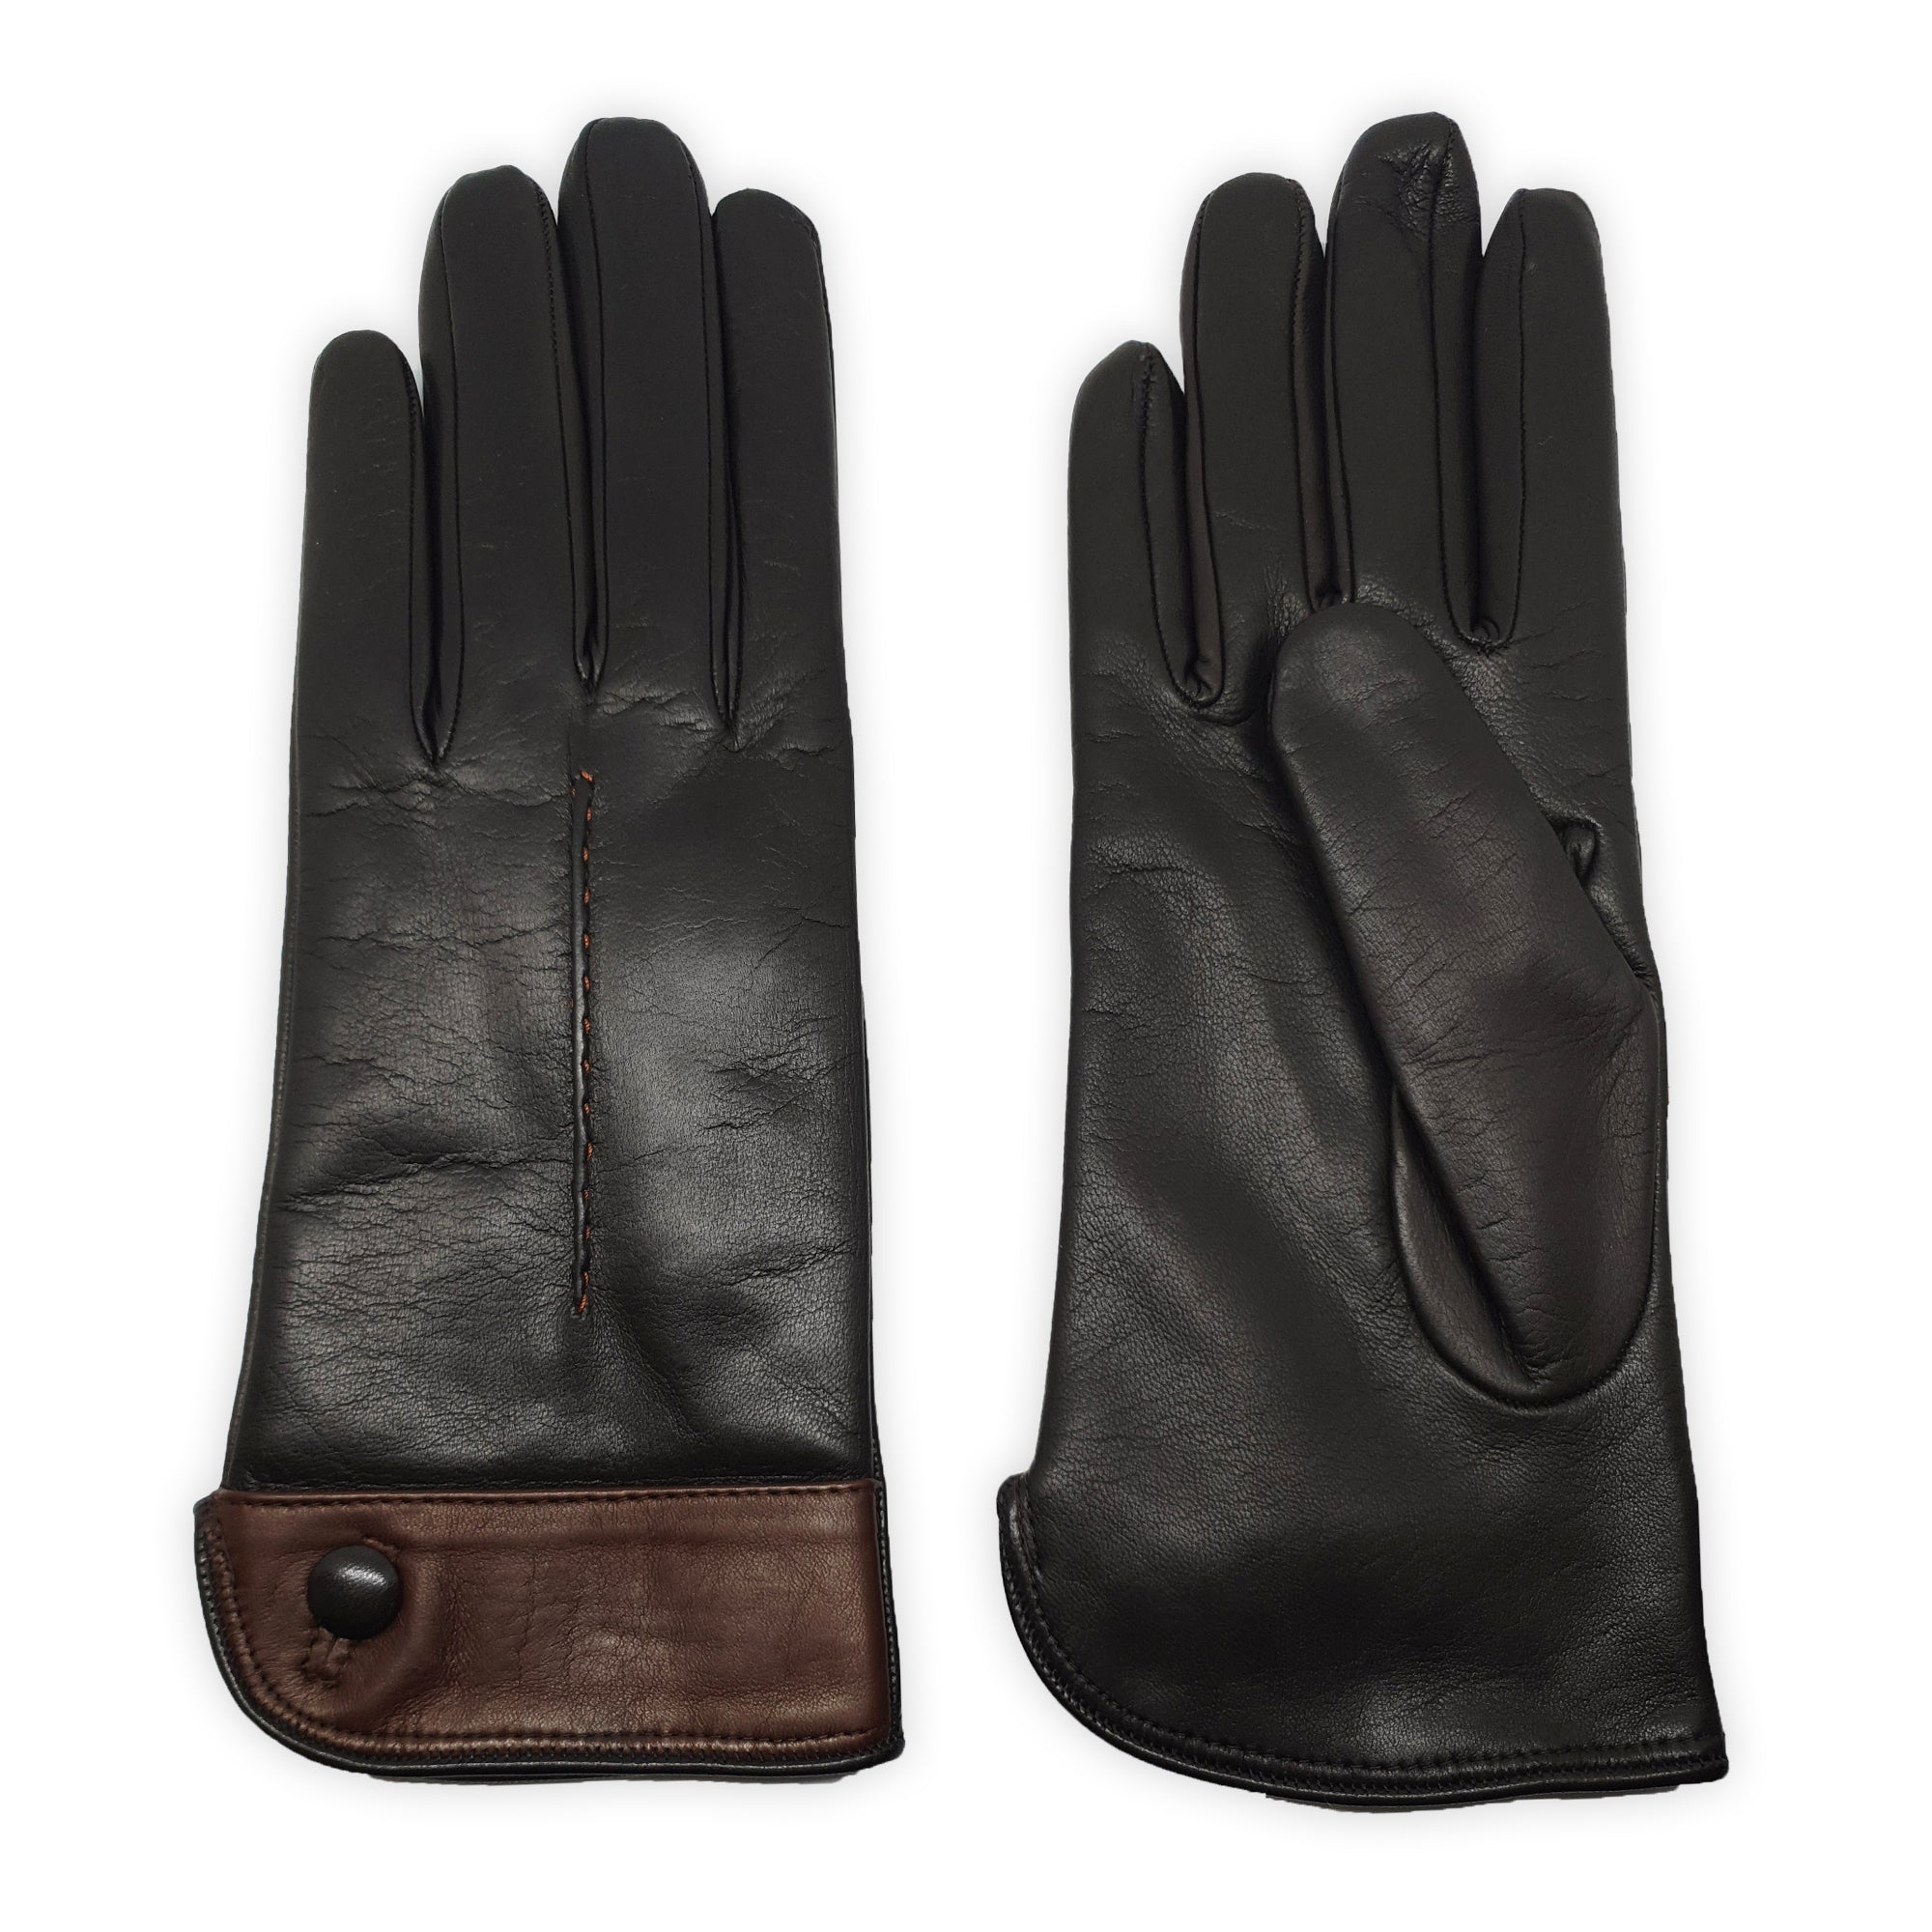 Genuine leather gloves lined in 100% cashmere, leather button, internal stitching